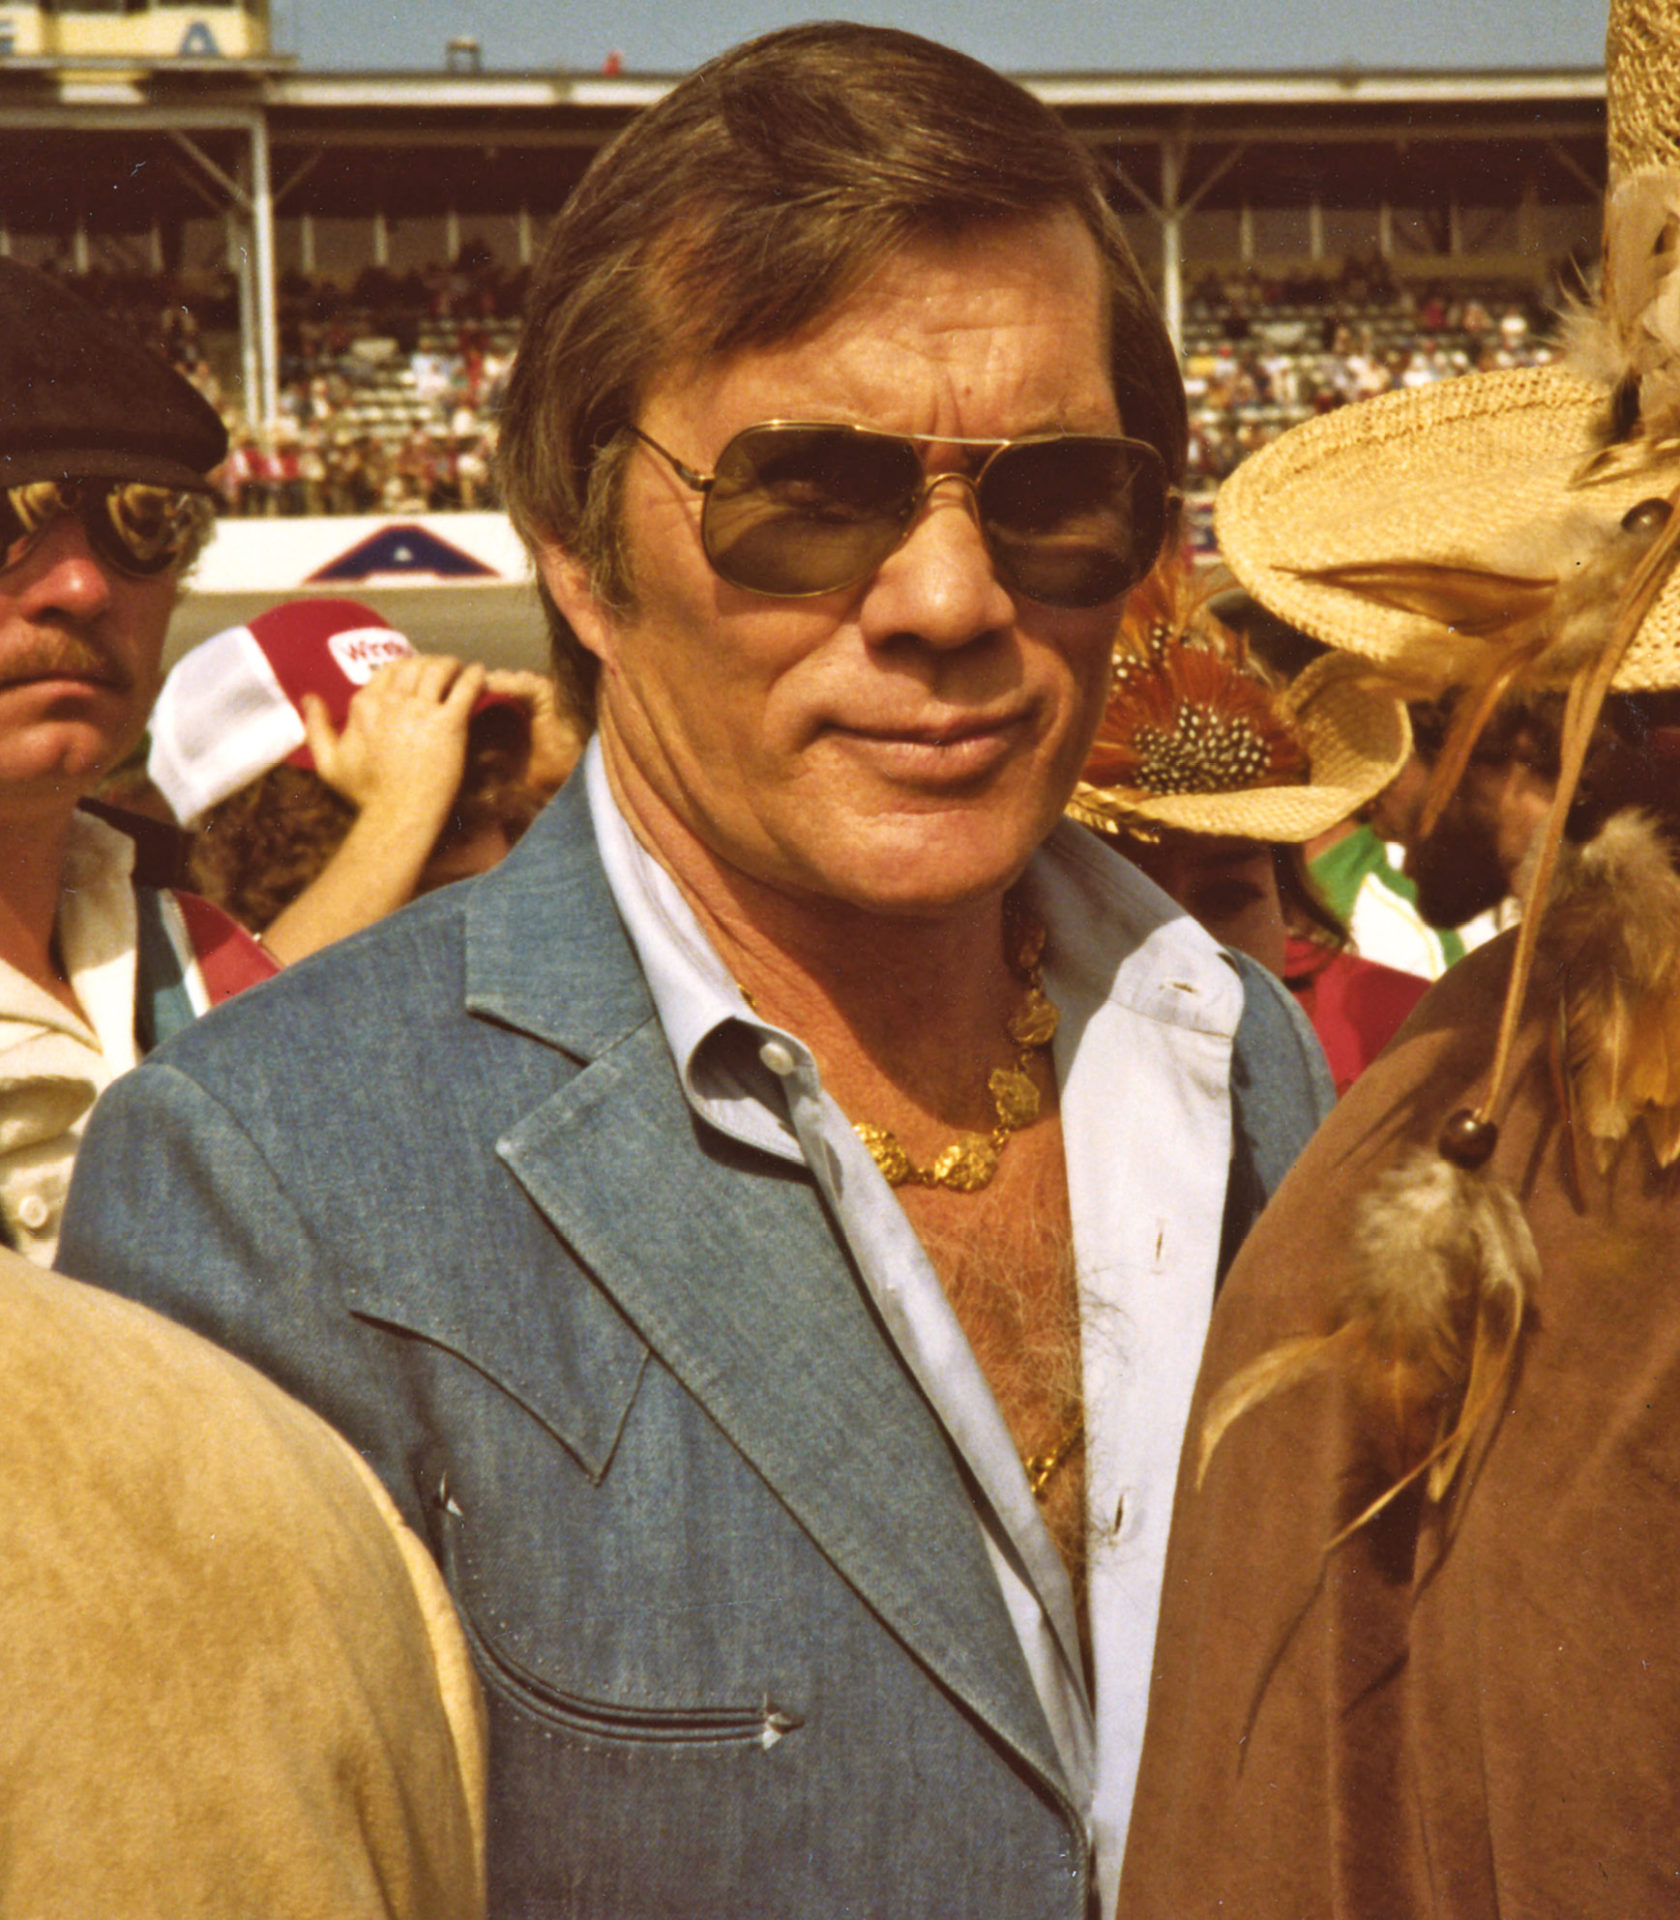 Hollywood director Hal Needham sunk $1m of his own money into the LSR project